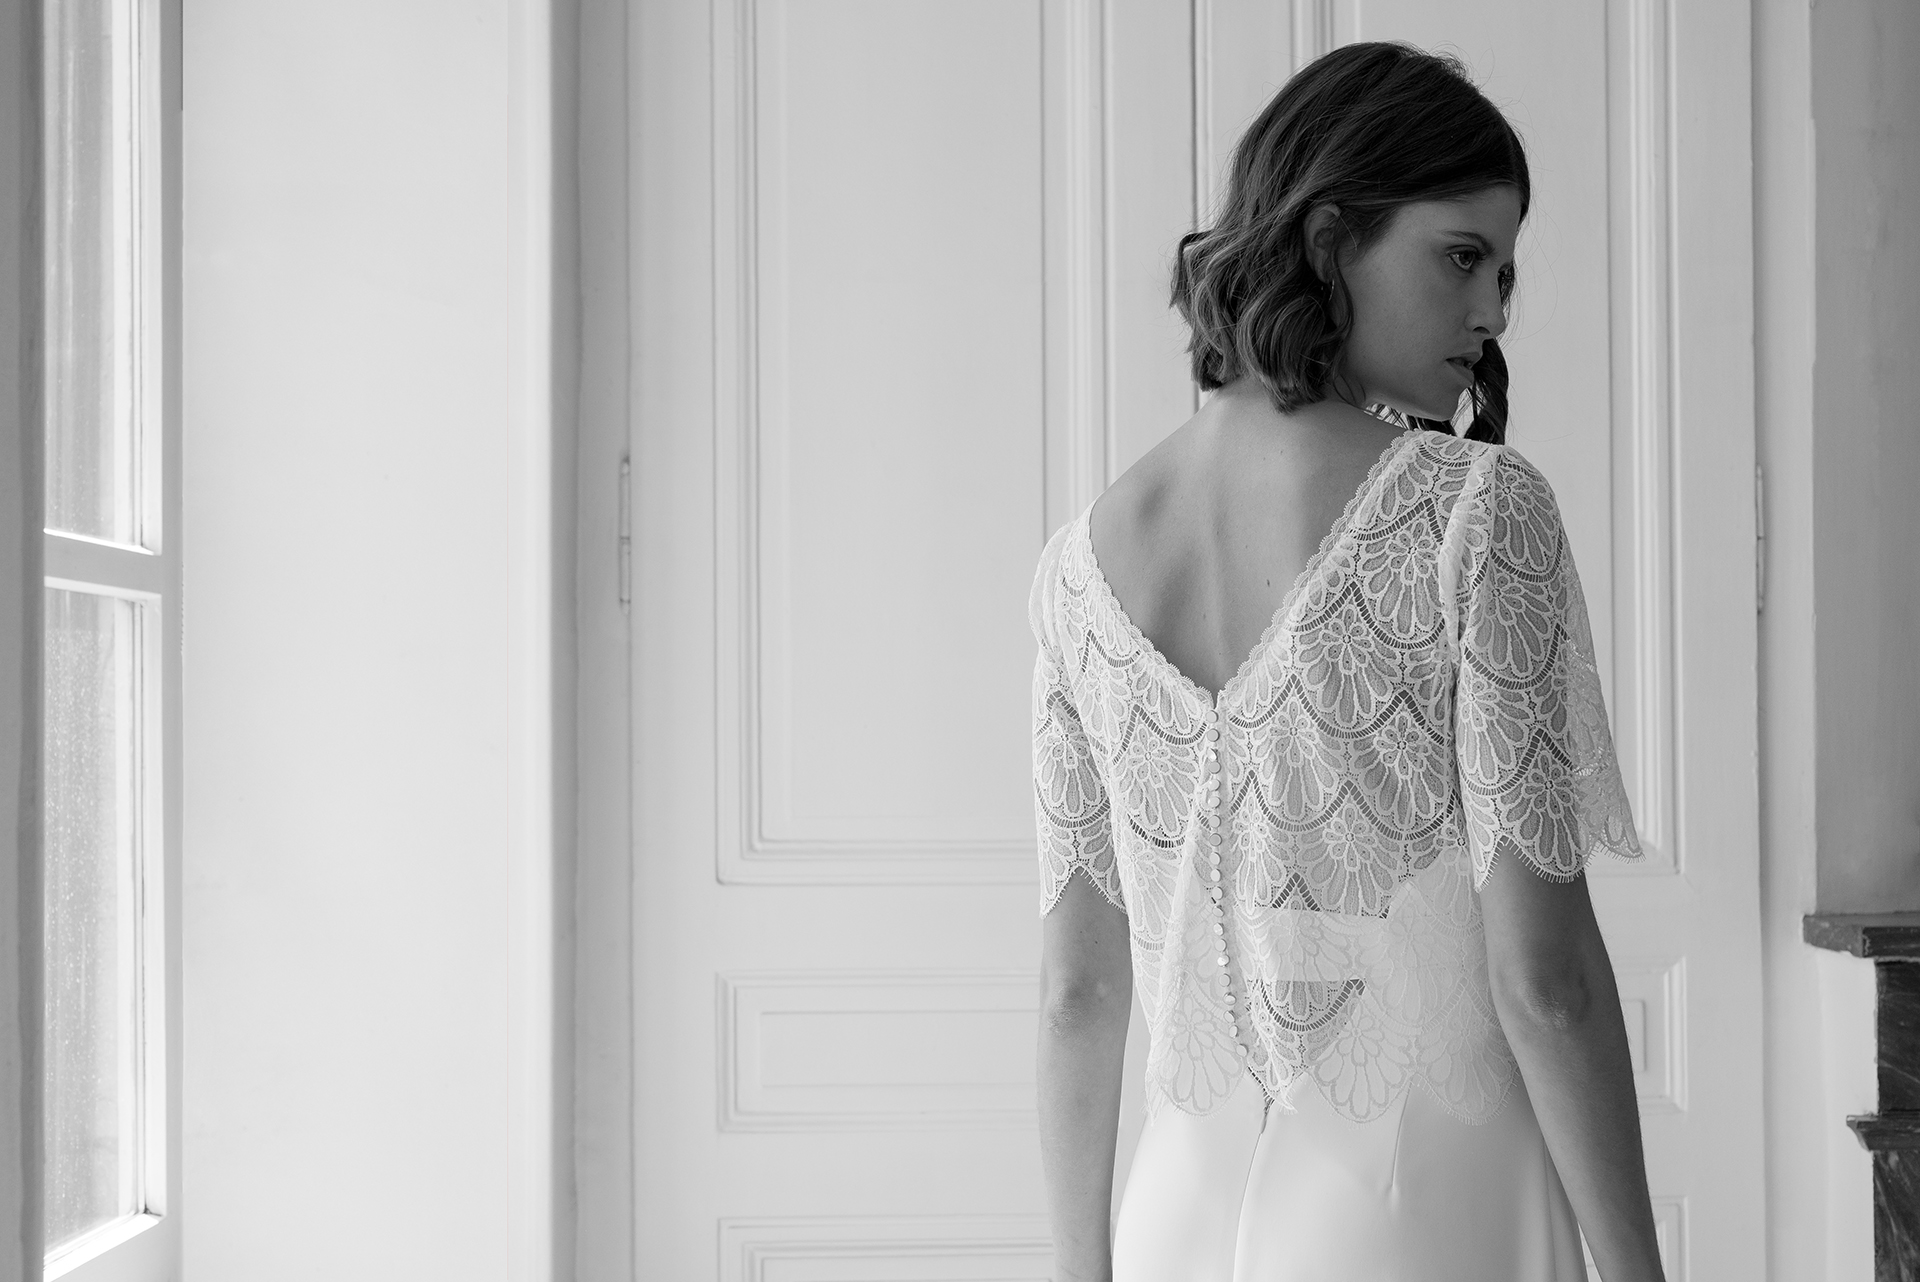 aurelia hoang, robe de mariée, robe mariée lyon, magasin robe de mariée lyon, creatrice robe mariee, boutique robe de mariée lyon, robe de mariée créateur, boutique mariage lyon, créateur robe de mariée, robe de mariée lyon, créatrice robes de mariée lyon, boutique robe de mariée, robe mariage lyon, robe mariée sur mesure lyon, robe de mariée nice, robe de mariée nantes, robe de mariée rhone, robe de mariée rhone alpes, robe de mariée courte lyon, création robe de mariée lyon, mariage civil lyon, mariage boheme lyon, mariage champetre lyon, wedding dress toronto, wedding dresses toronto, wedding gown toronto, wedding gown shops toronto, wedding dress stores toronto, wedding dress designer, wedding dress designer toronto, wedding dress designers canada, canadian wedding dress designers, canada wedding dress designers, canada wedding dresses, toronto bridal stores, toronto bridal, toronto bridal style, toronto bridal designers, toronto bridal designer, toronto wedding gowns, bridal designer toronto, designer wedding dresses, designer of custom wedding dresses, custom wedding gowns toronto, bridal couture store, toronto bridal boutique, wedding dresses boutique, toronto bridal store, designer bridal boutique, bridal store in toronto, custom bridal dresses toronto, custom bridal gown design, custom designed wedding gowns, custom made wedding gown toronto, bridal shop, toronto bridal shop, wedding dresses in toronto, modern bride, boho wedding dress toronto, robe monroe, top merimee, top mariee dentelle, monroe wedding dress, merimee wedding top, wedding lace top, collection 2020